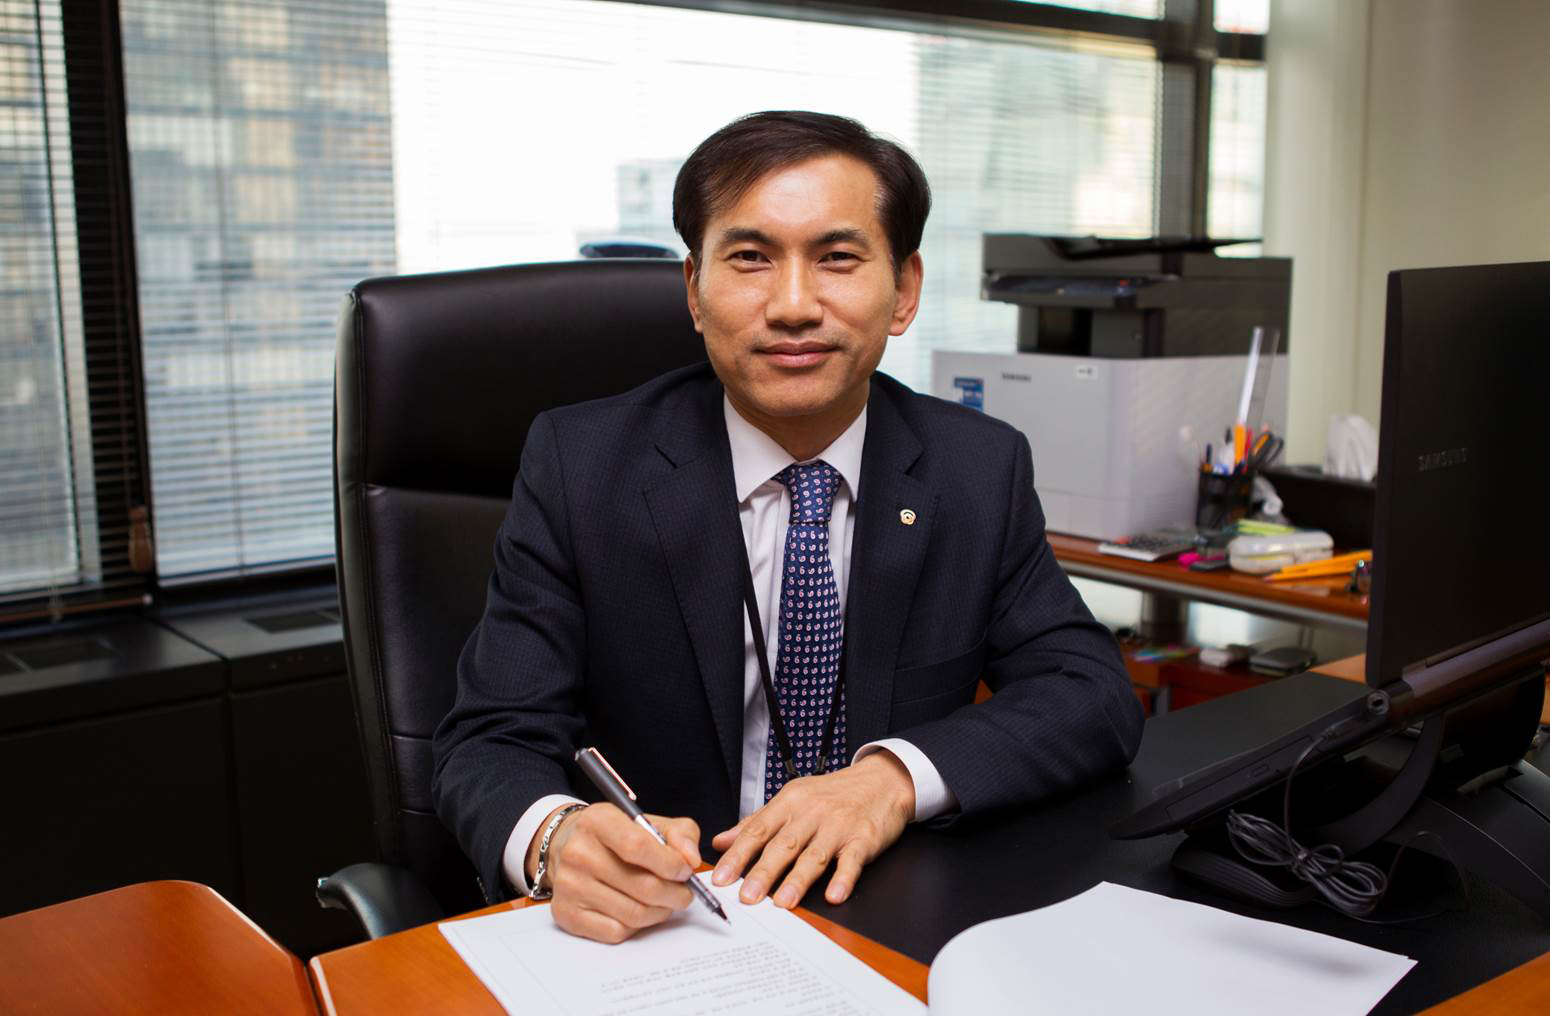 Lee Man-Seob, President and CEO of Hanwha Techwin Security Business Group